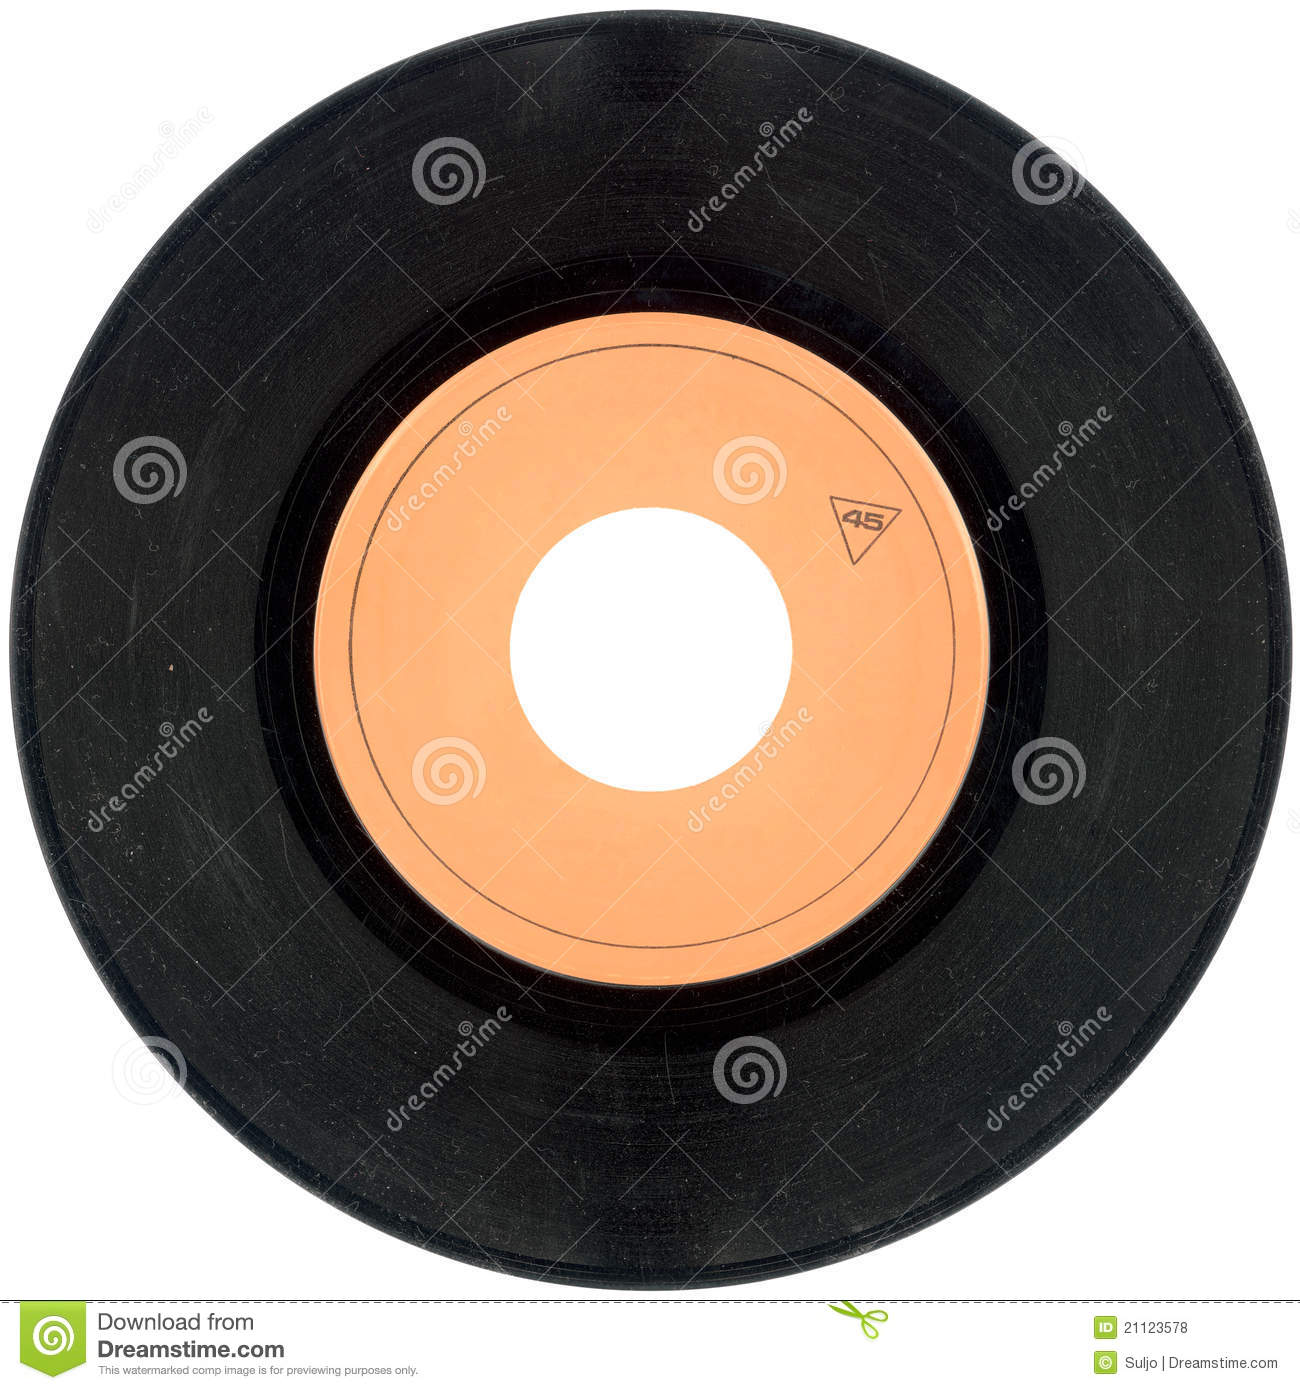 This is a photo of Tactueux Free Vinyl Record Label Template